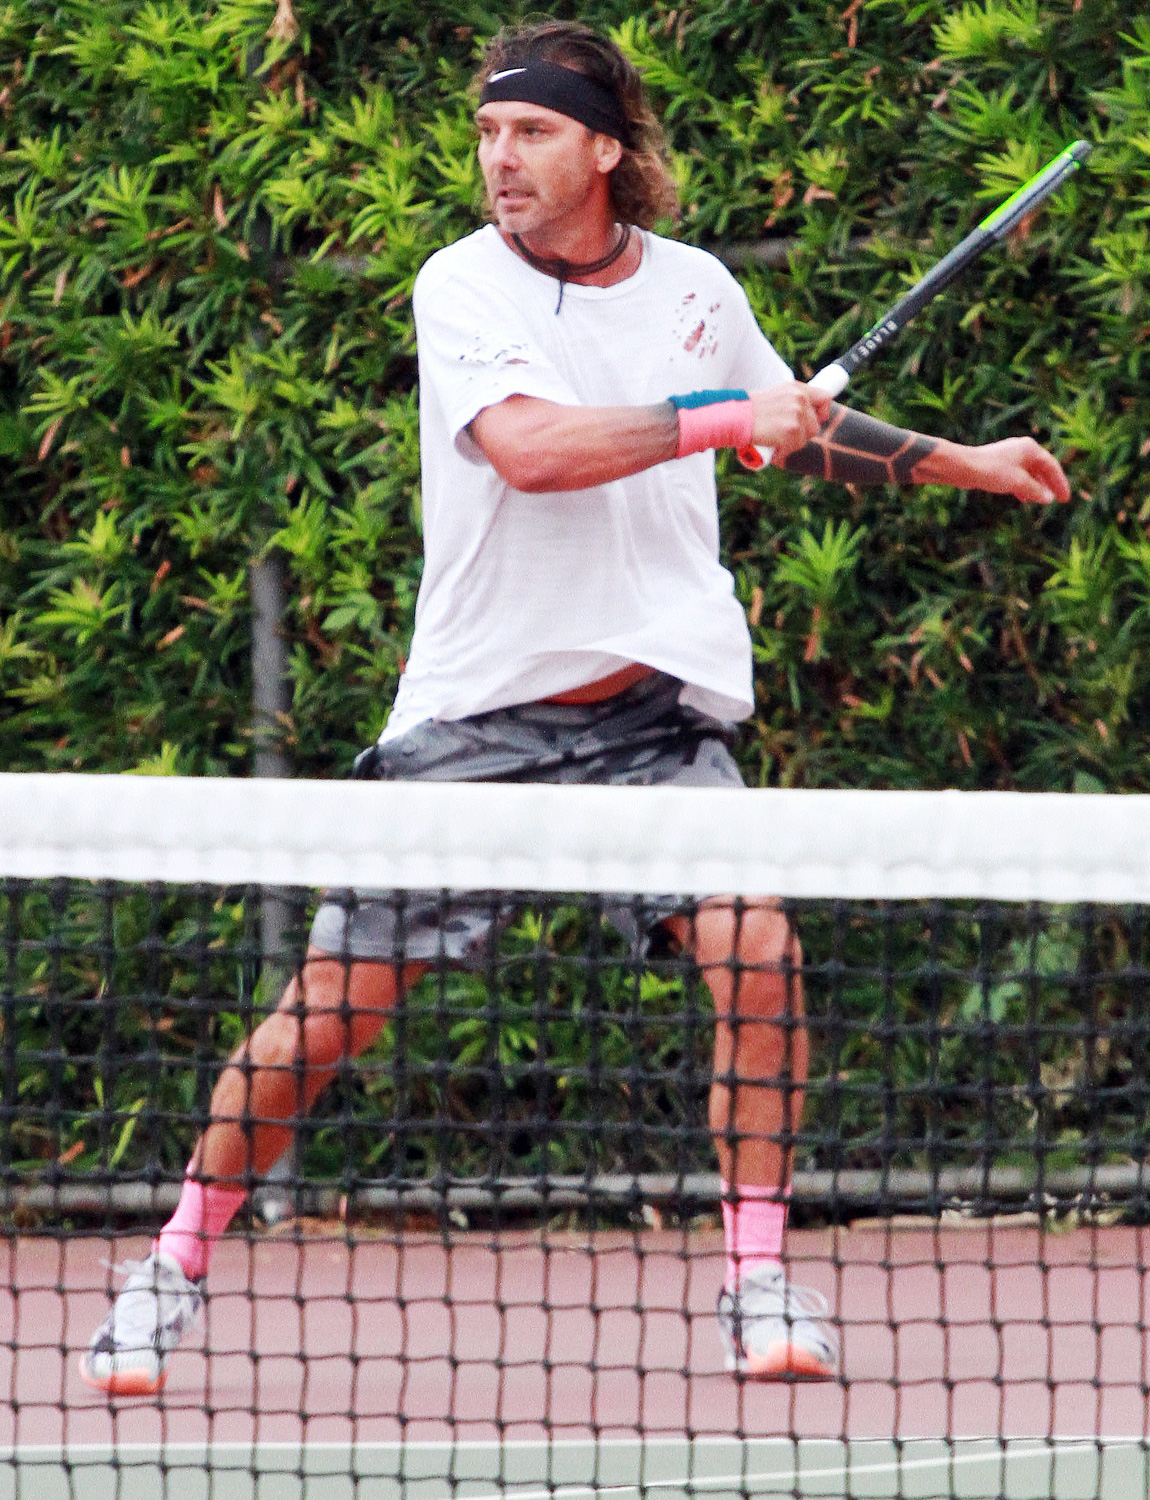 Gavin Rossdale is Pictured Playing an Intense Game of Tennis in Los Angeles.